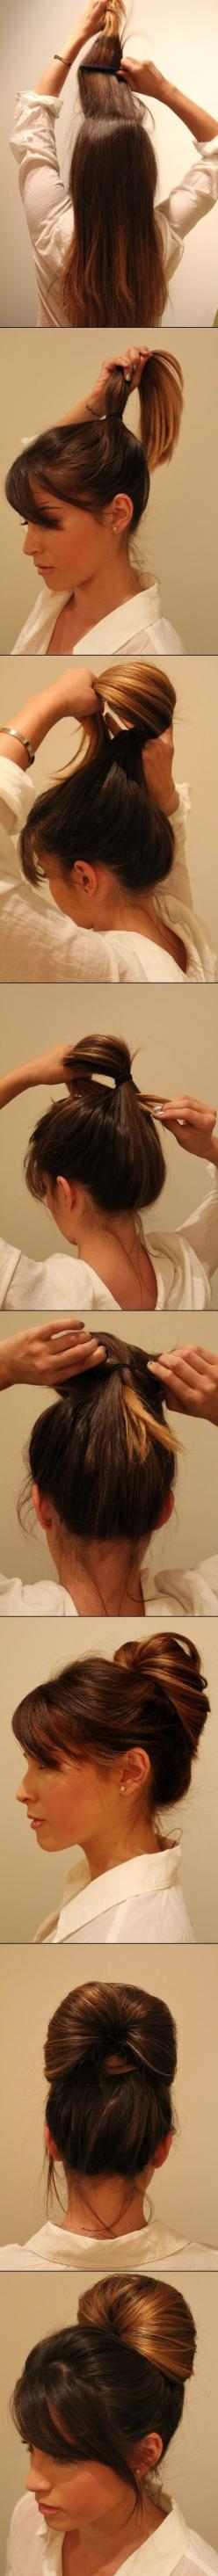 Easy Updo: Up Dos, Hairstyles, Hairdos, Hair Styles, Long Hair, Hair Tutorial, Hair Do, Updos